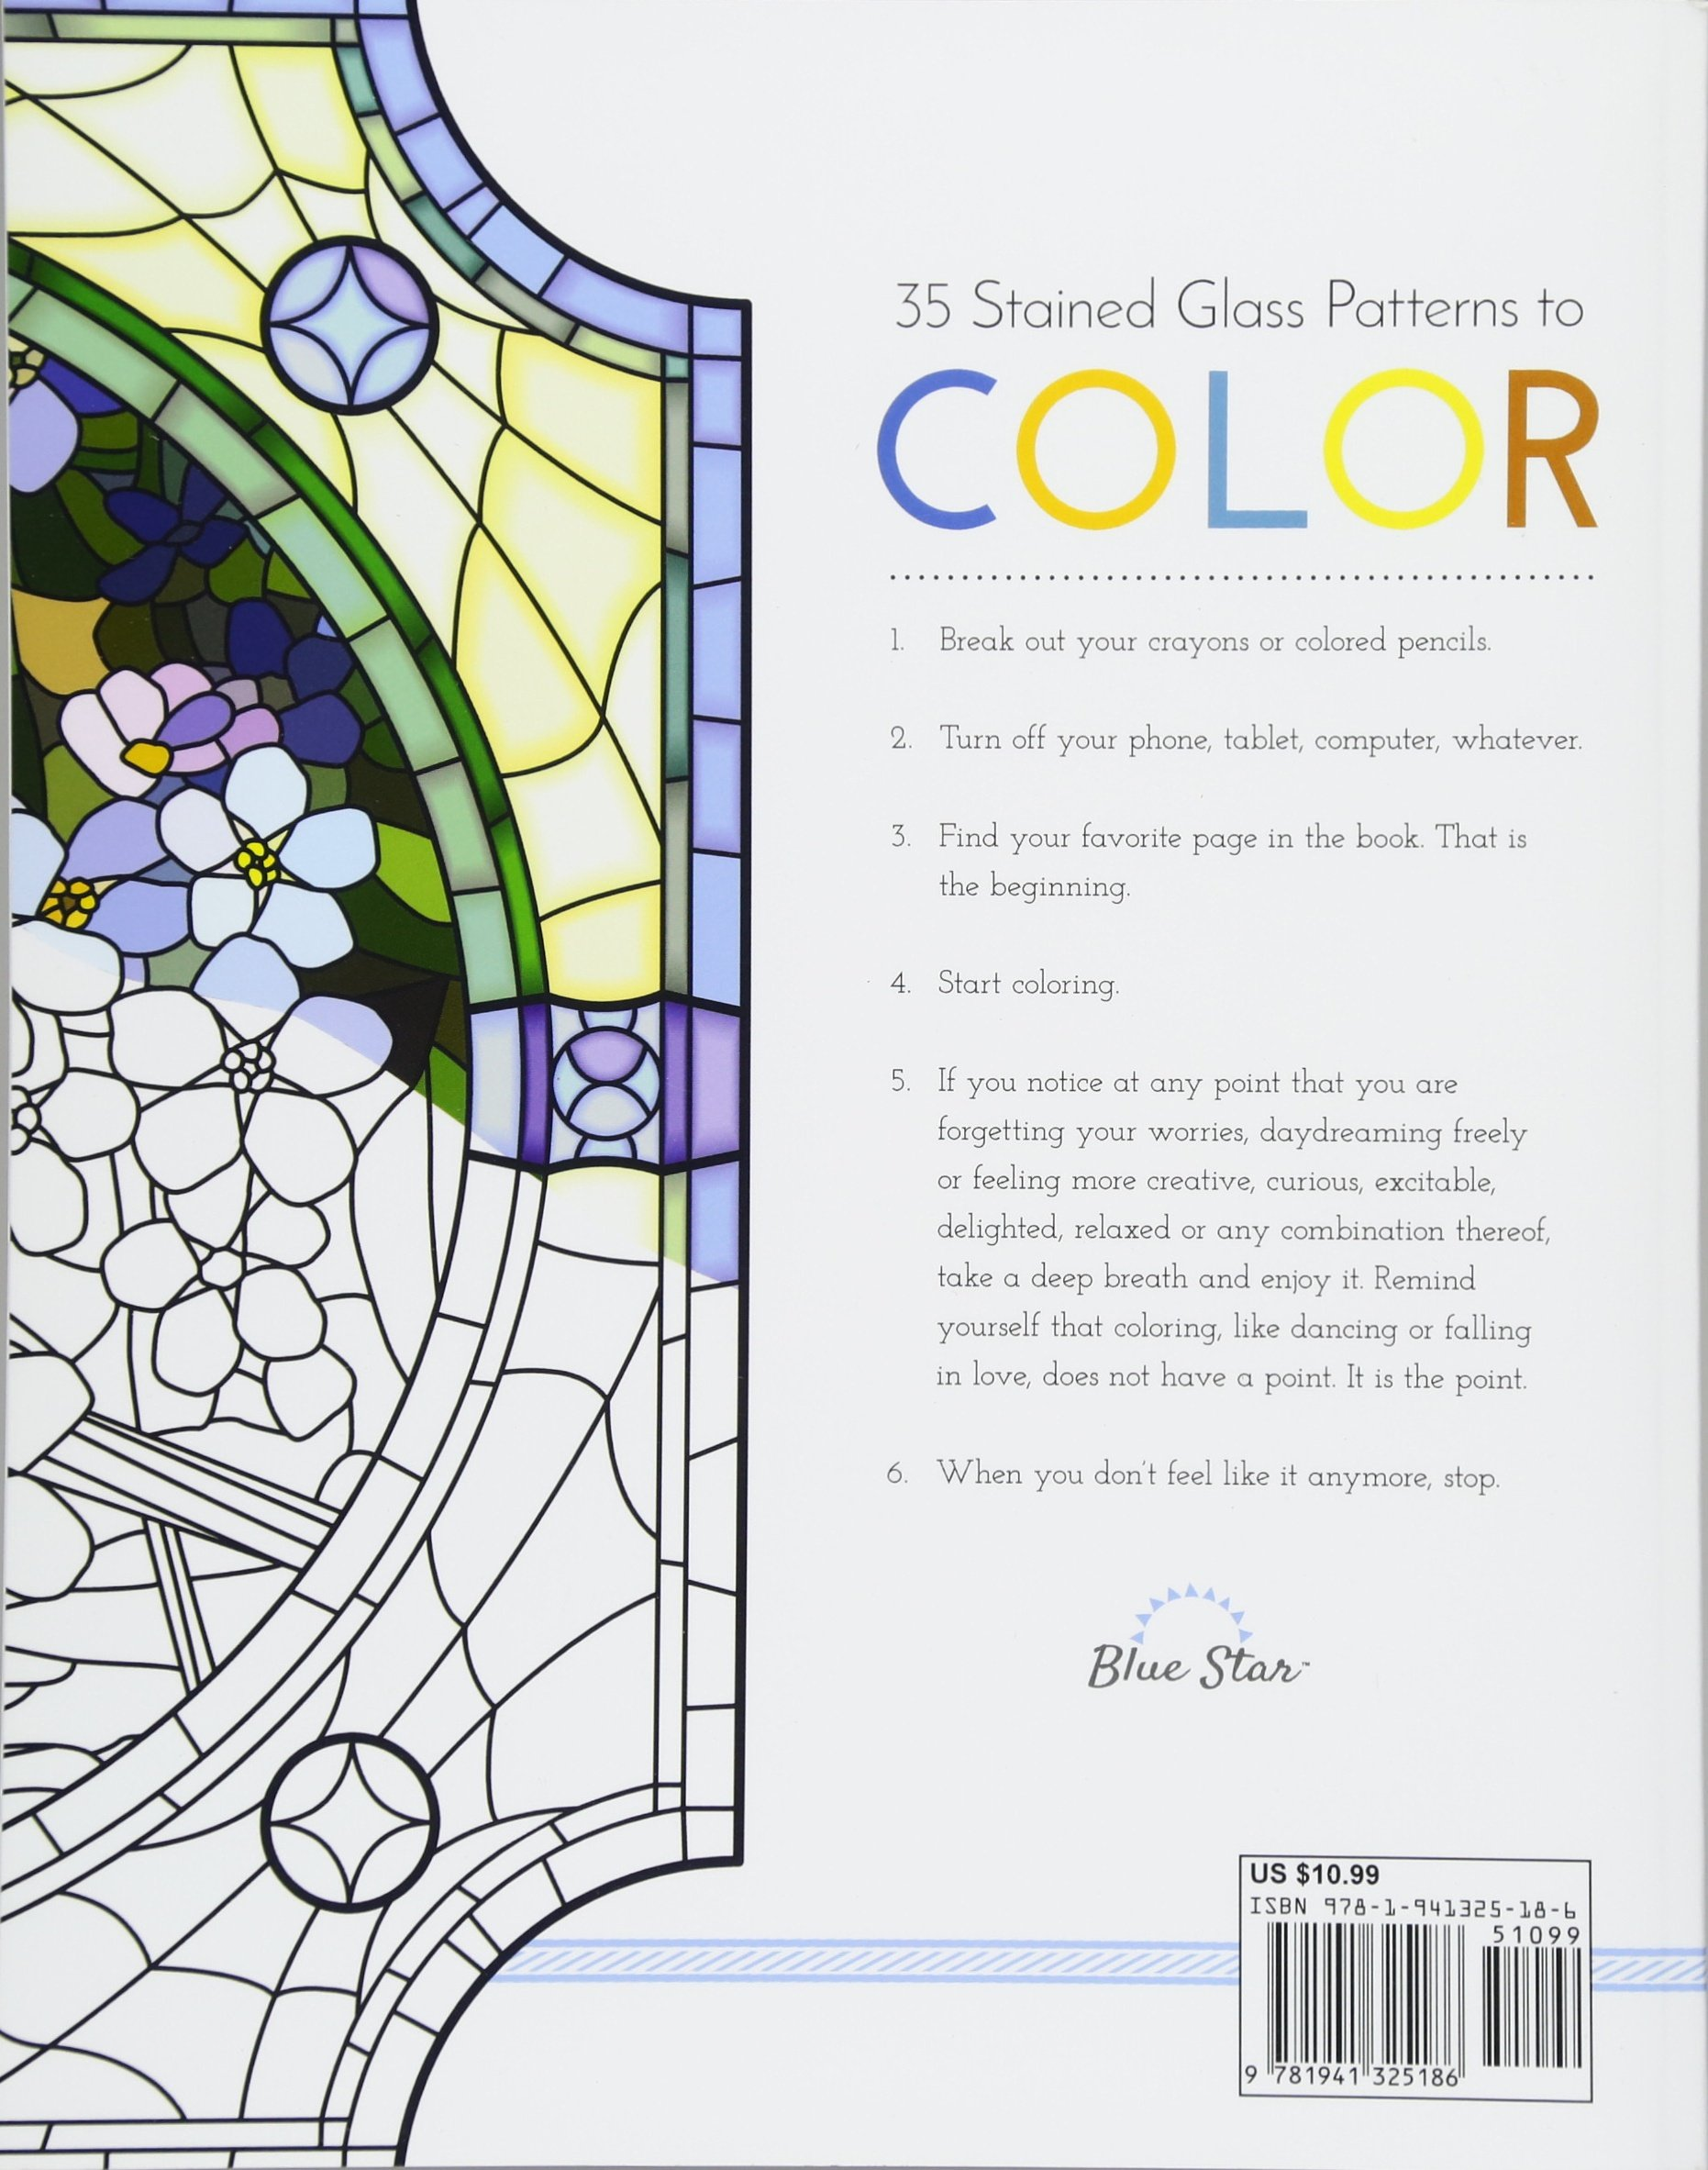 Coloring Book For Adults Stress Relieving Stained Glass Blue Star 9781941325186 Amazon Books